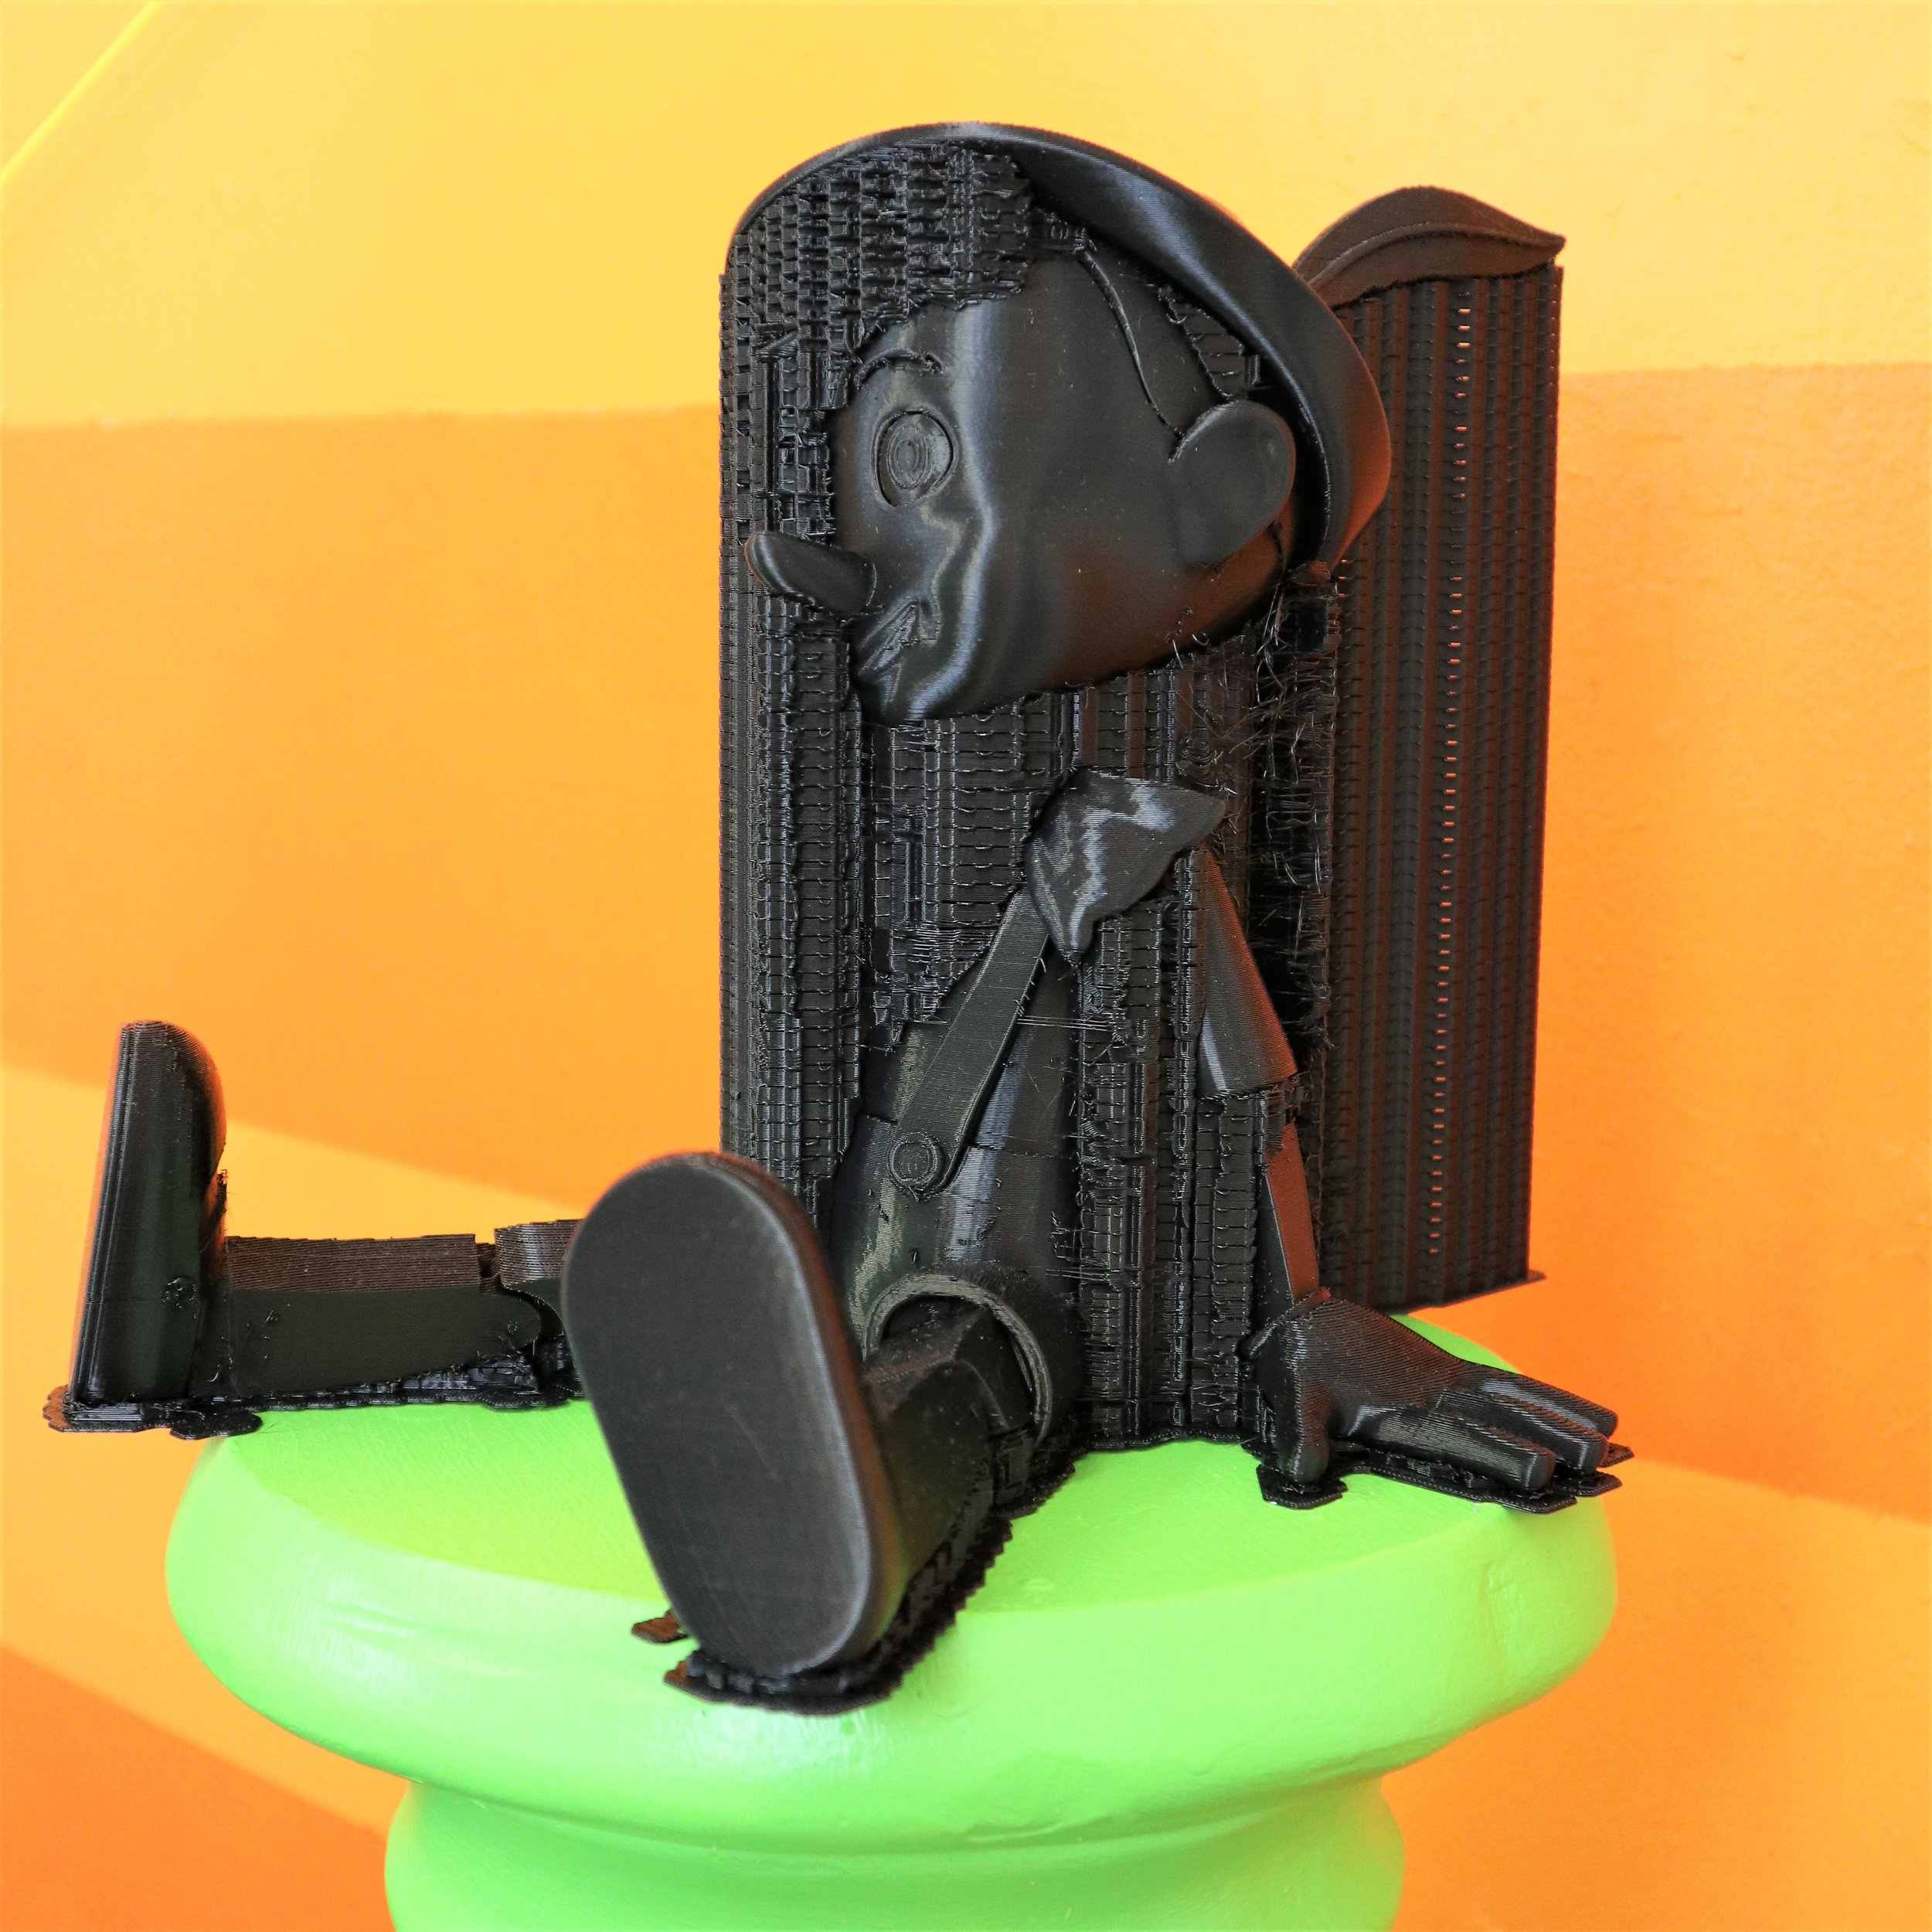 Pinocchio_Seated   2018  polylactic acid 3D print  3D print made secretly in military contractor's printing lab using model design purchased online